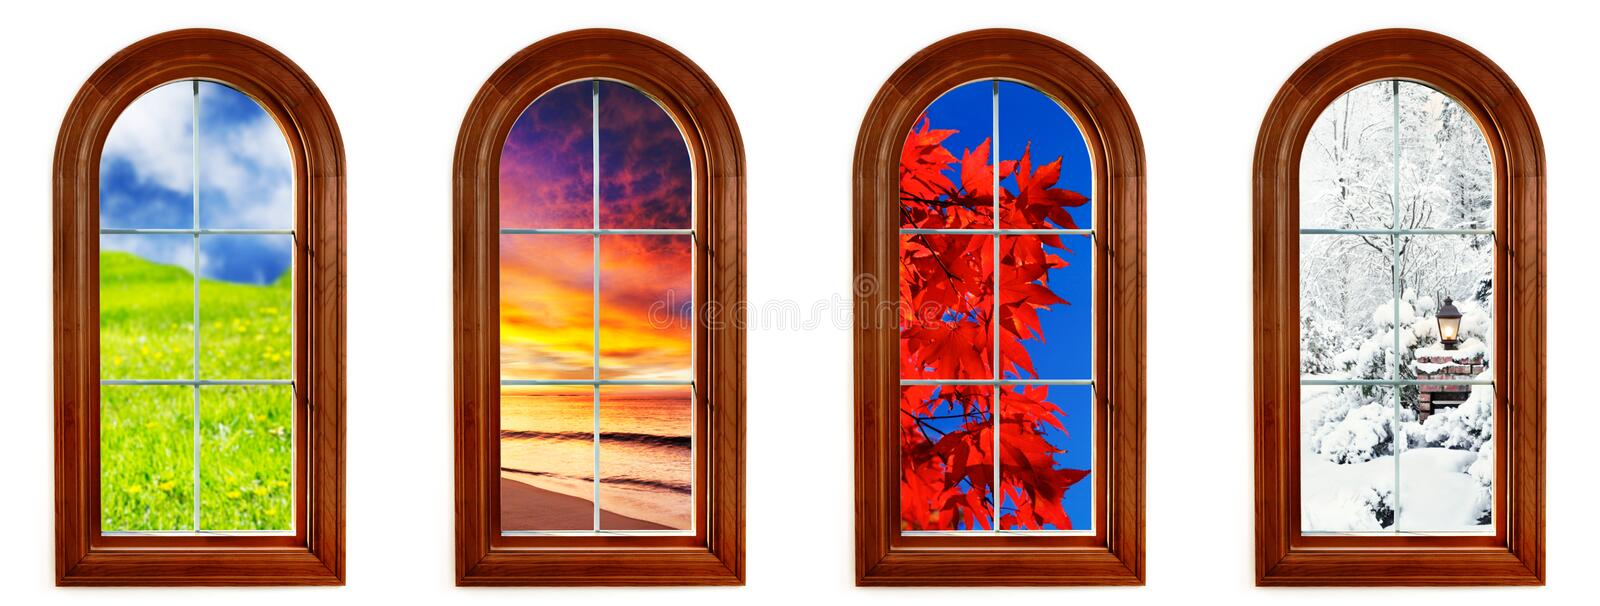 Four seasons. Round top window with views of spring, summer, fall and winter royalty free stock photography